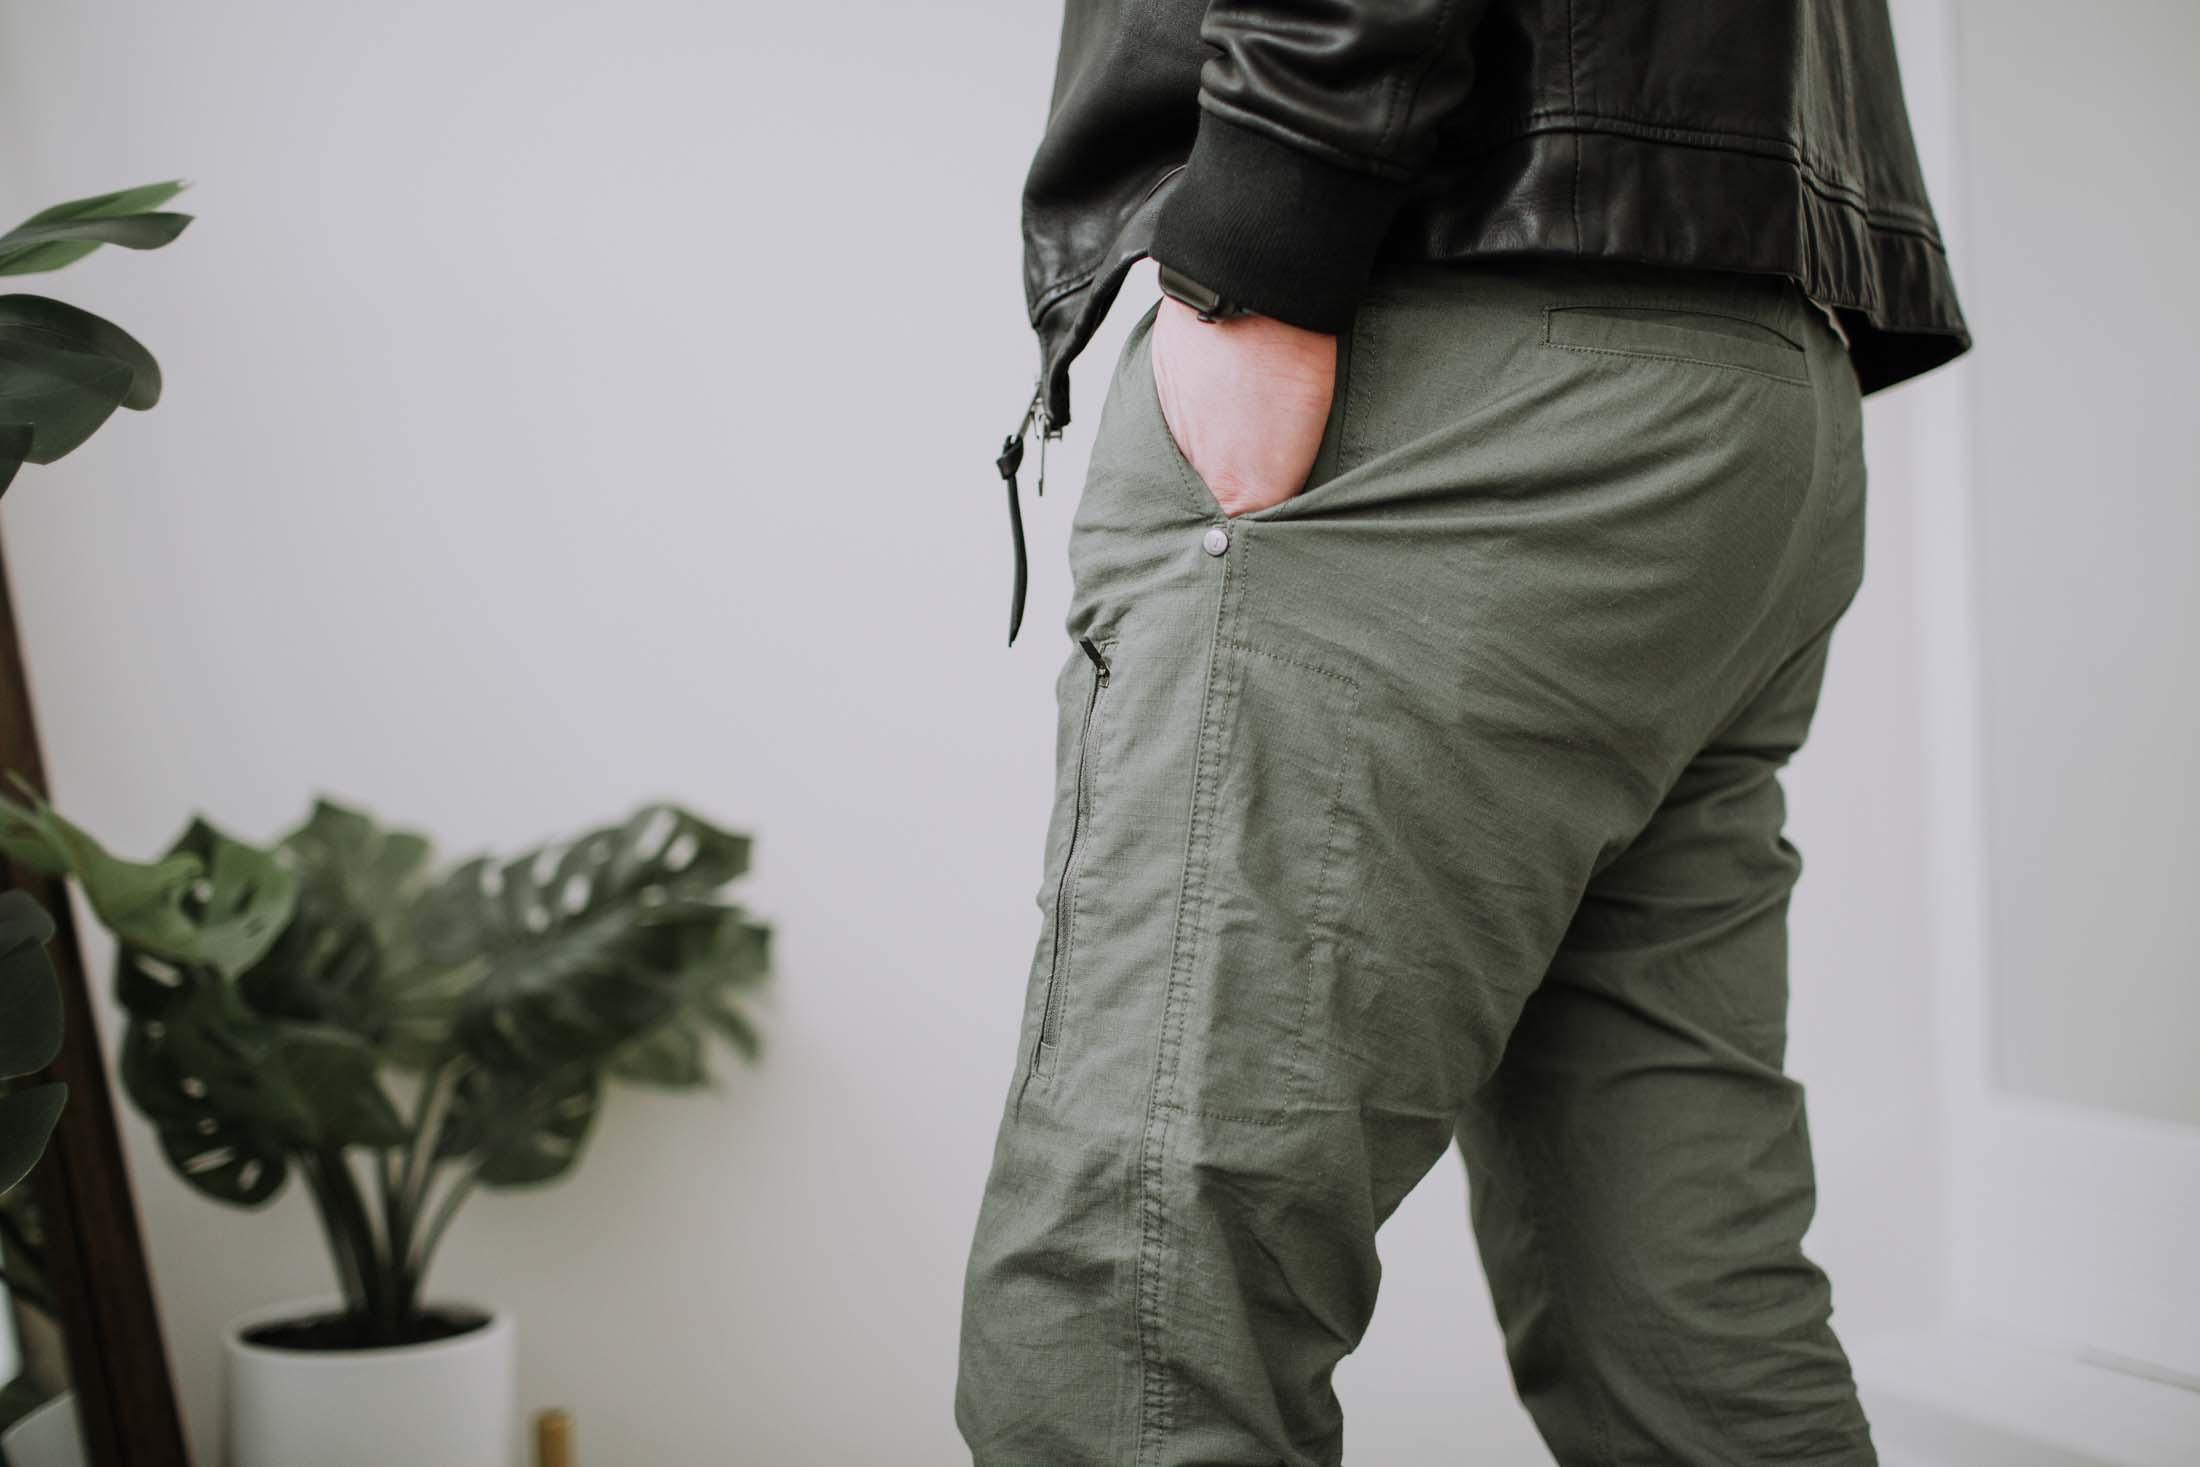 The Vuori Ripstop Climber Pants are like the ultimate all-around, wear-with-everything, do-anything-in pants. They're Zack's new favorites.